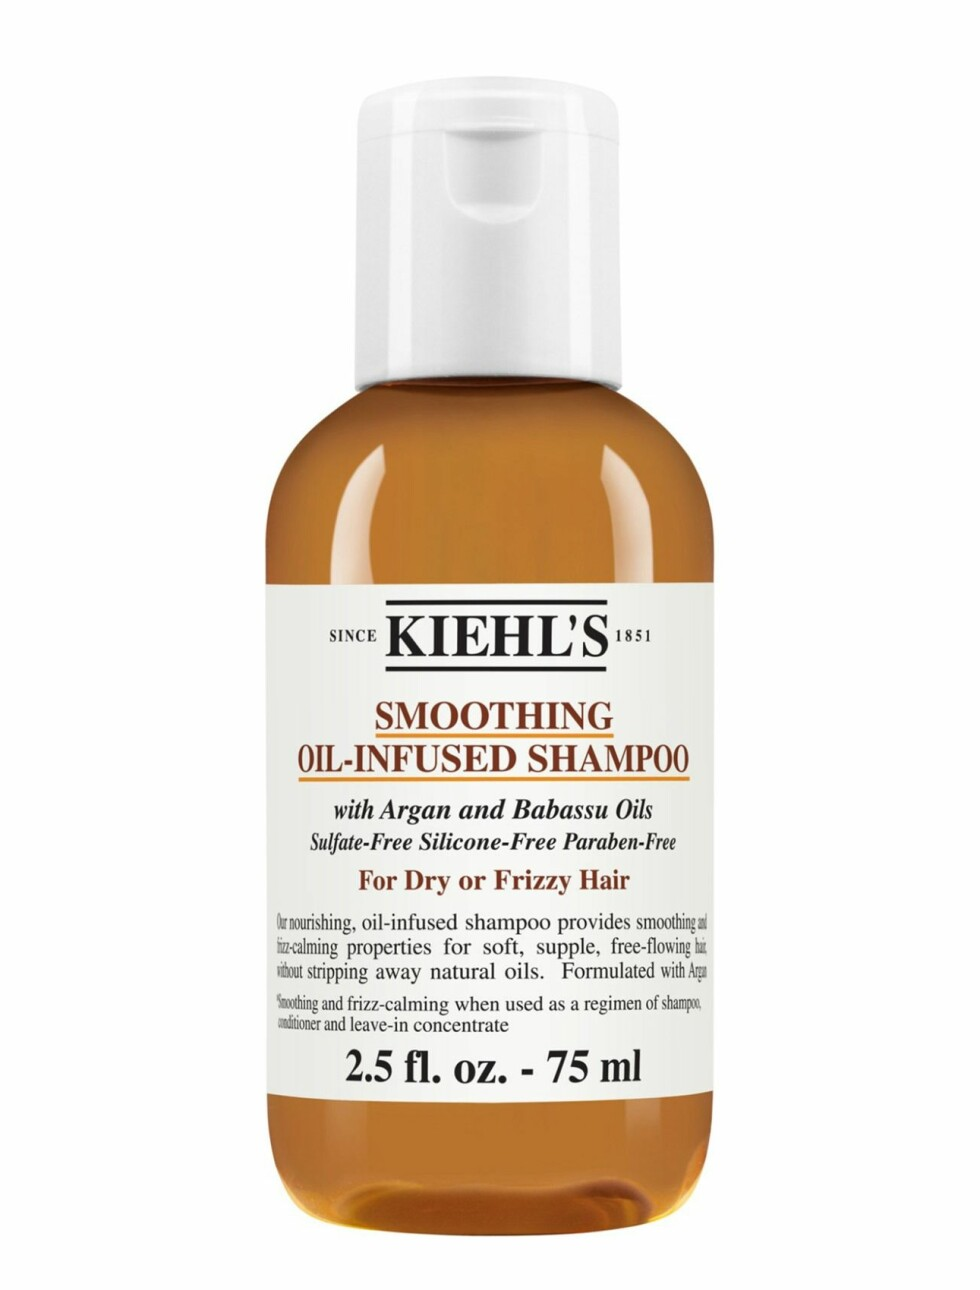 Sjampo fra Kiehl's  90,-  https://www.boozt.com/no/no/kiehls/smoothing-oil-infused-shampoo_18337157/18337163?navId=67599&group=listing&position=1400000